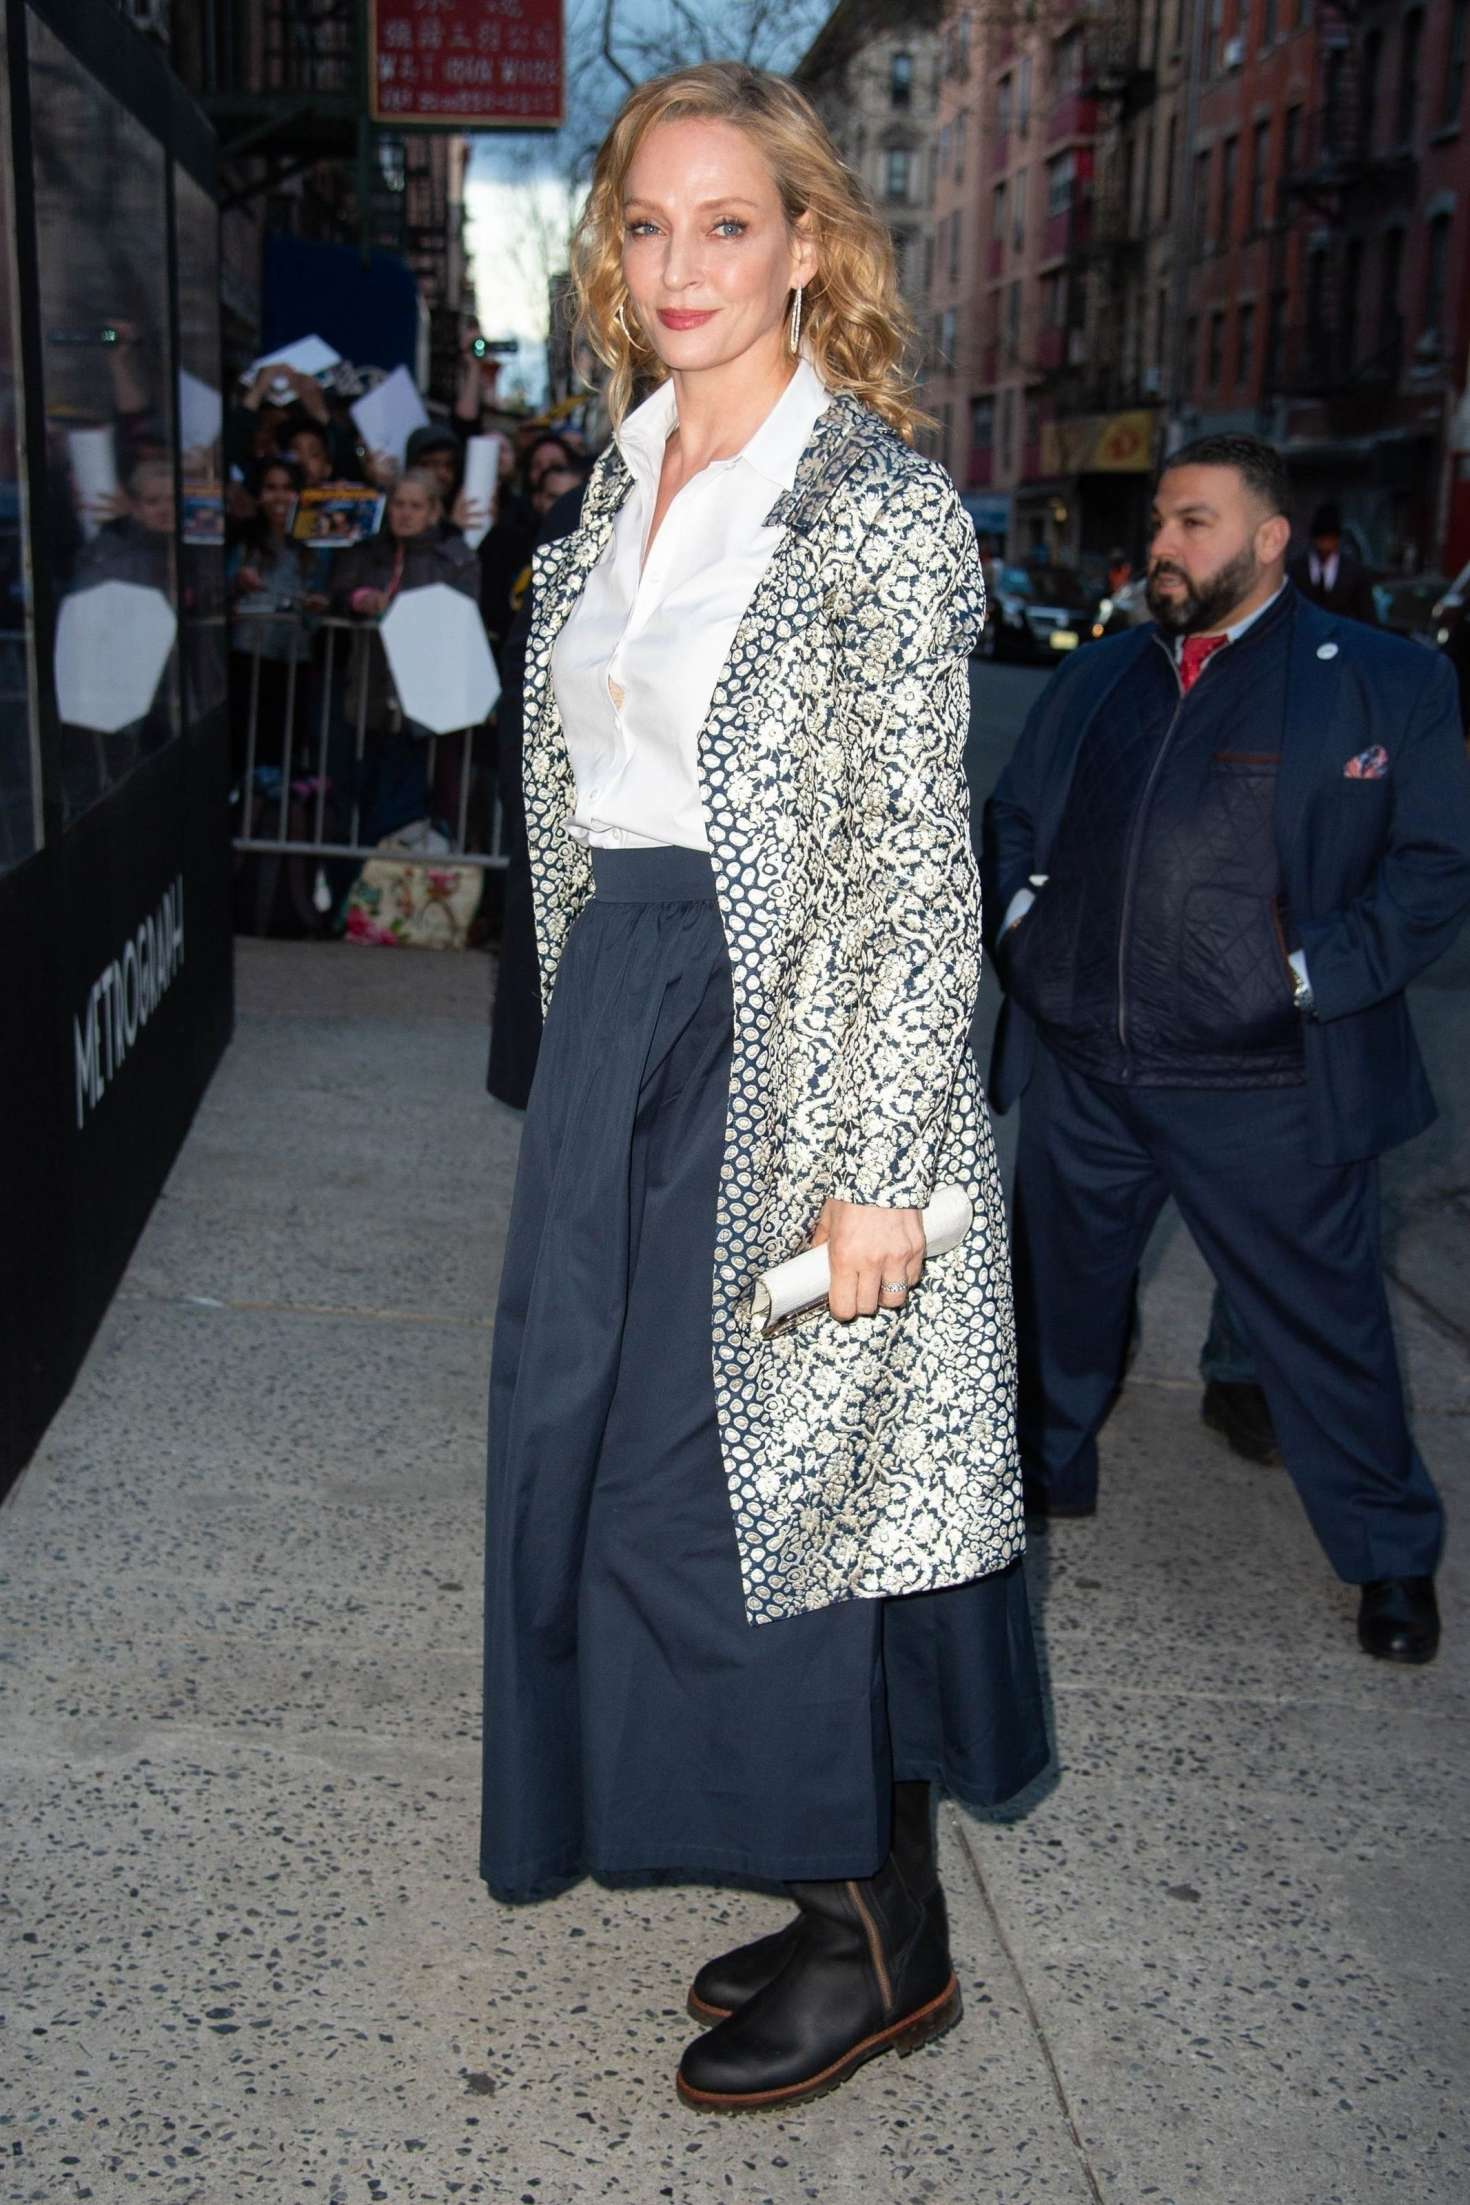 Uma Thurman 2019 : Uma Thurman: Arrives at the Chambers Premiere -01